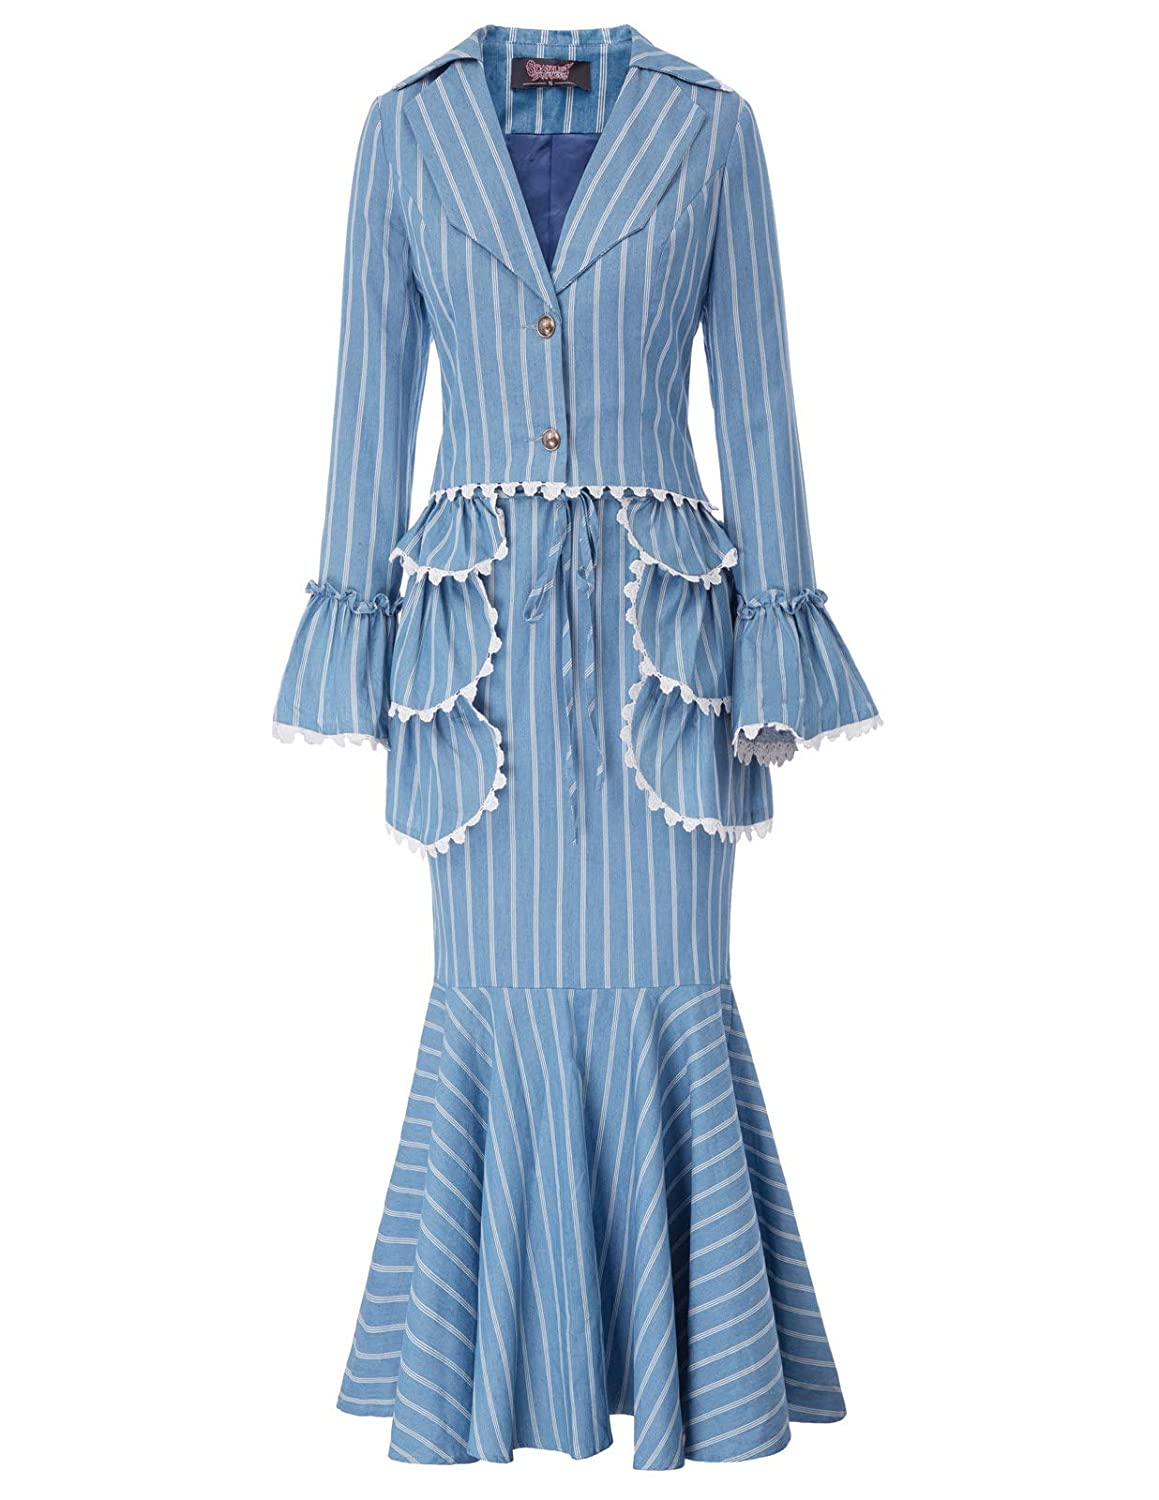 1890s-1900s Fashion, Clothing, Costumes Women 3pcs Set Vintage Victorian Costume Edwardian Suit Coat+Skirt+Apron $59.99 AT vintagedancer.com